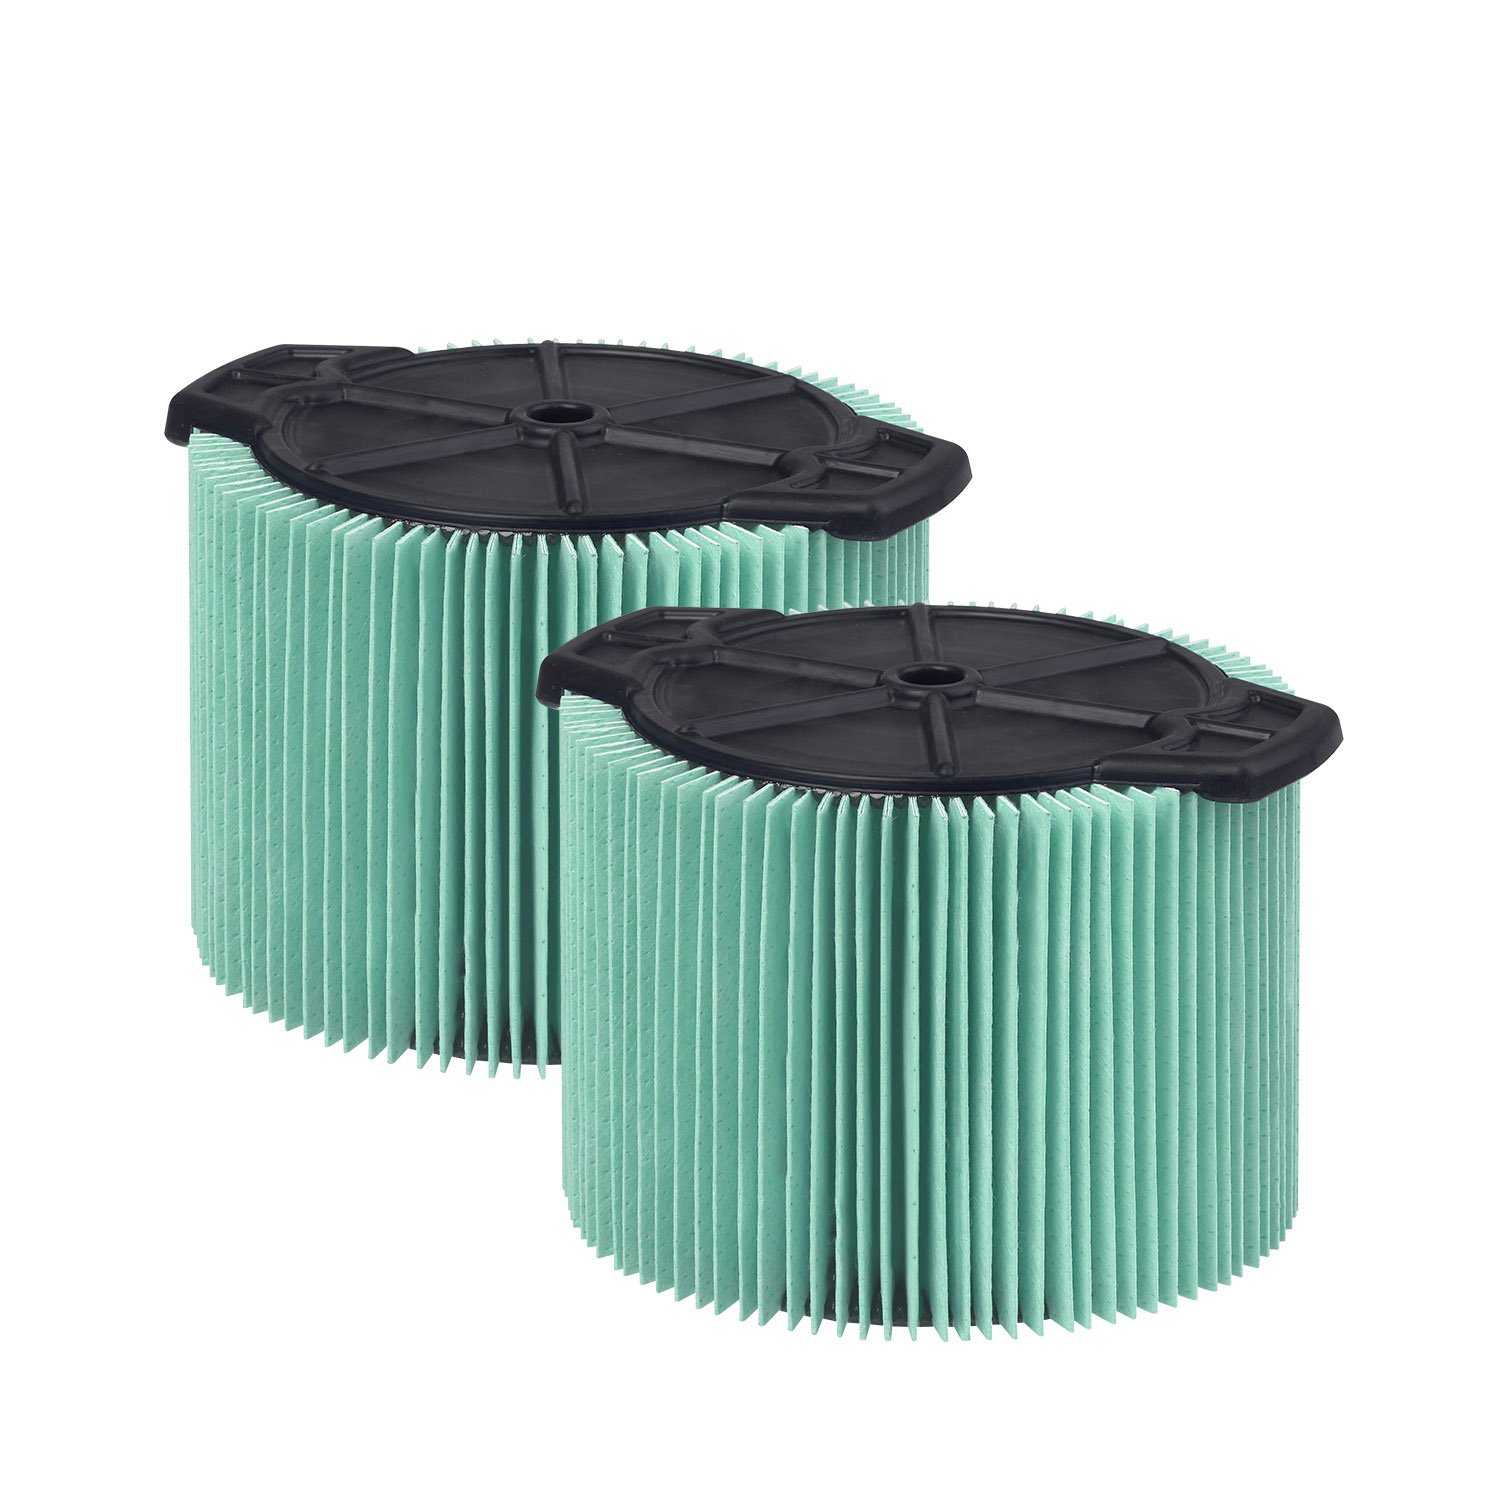 WORKSHOP Wet Dry Vacuum Filters WS13045F2 HEPA Media Filter For Shop Vacuum Cleaner (2-Pack - HEPA Media Filter For Wet Dry Vacuum Cleaner) Fits WORKSHOP 3-Gallon to 4-1/2-Gallon Shop Vacuum Cleaners